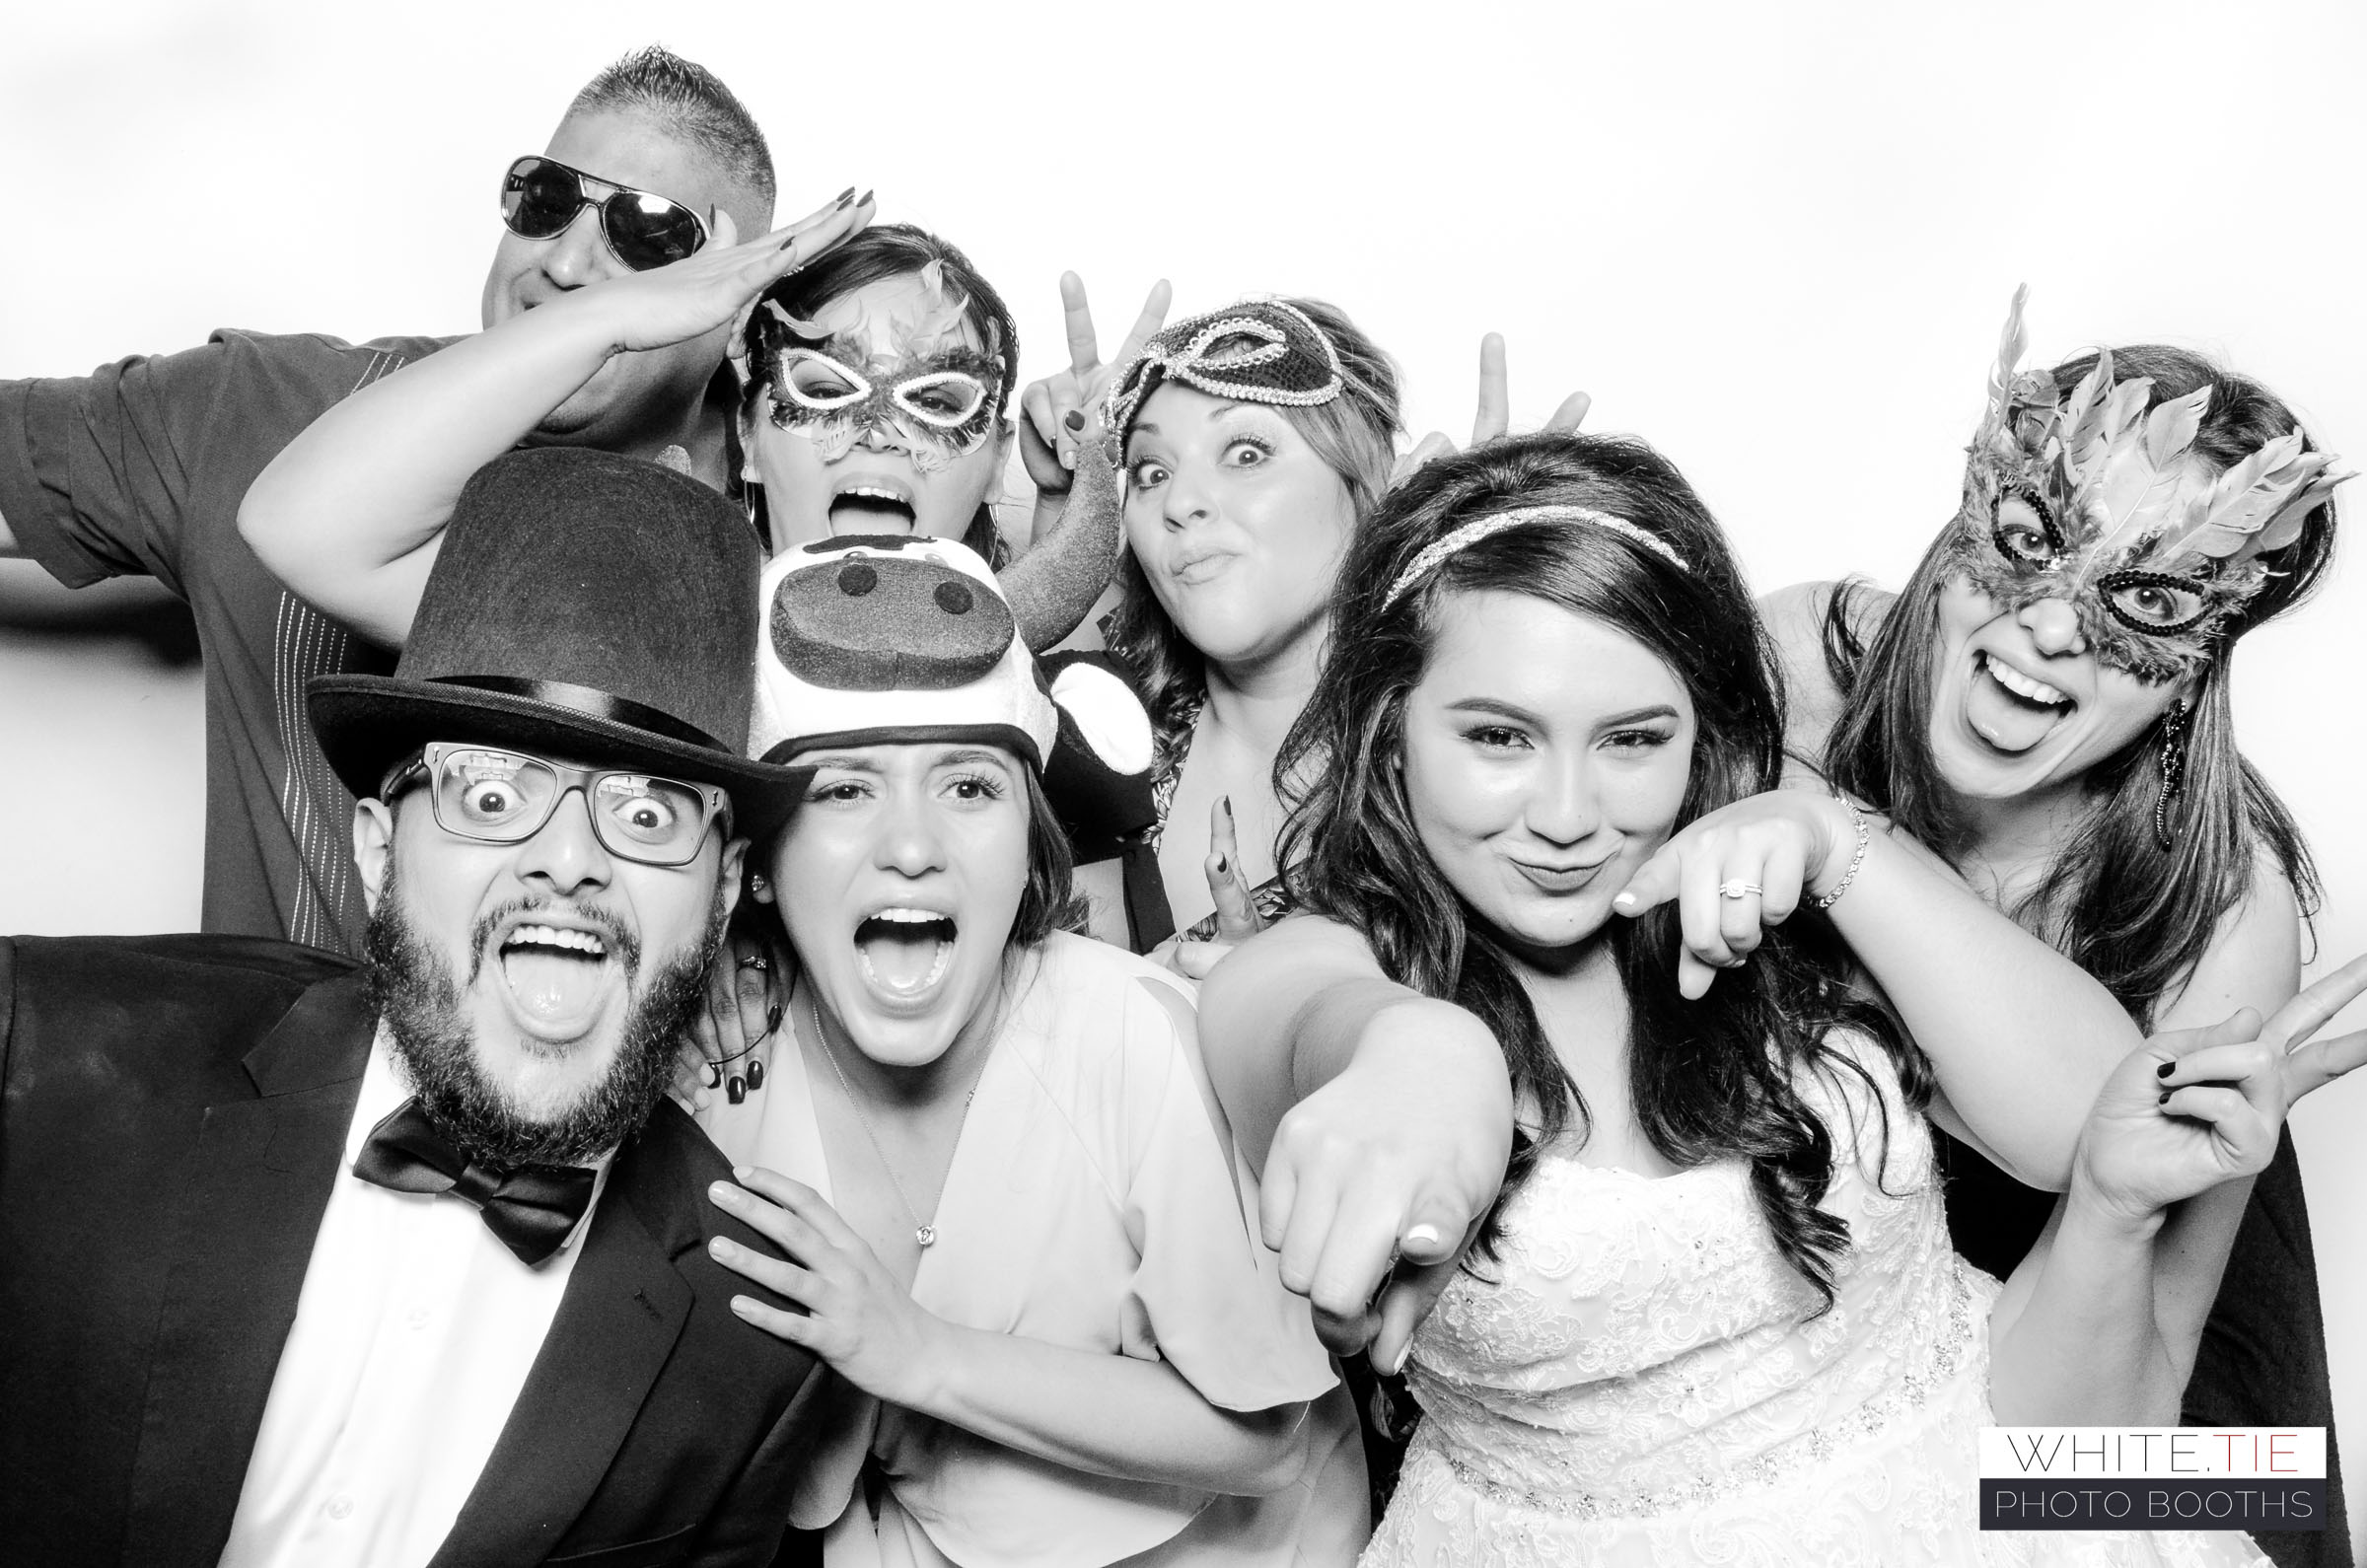 wedding photo booth archives white tie photo booths sarasota st